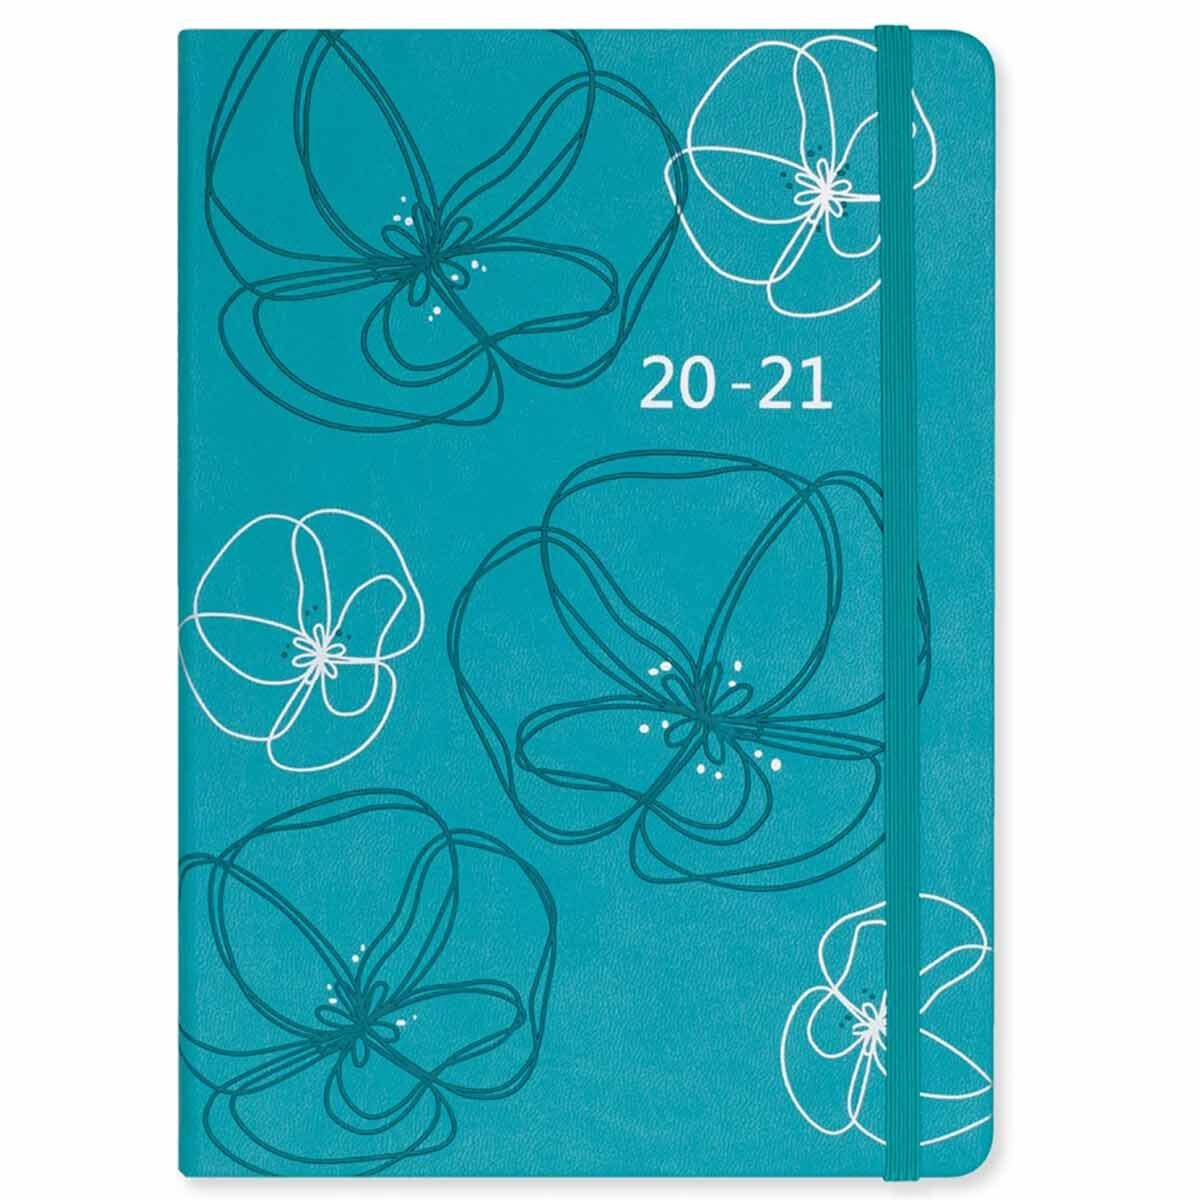 Matilda Myres Soft Touch Diary Week to View A5 2020-2021 Teal